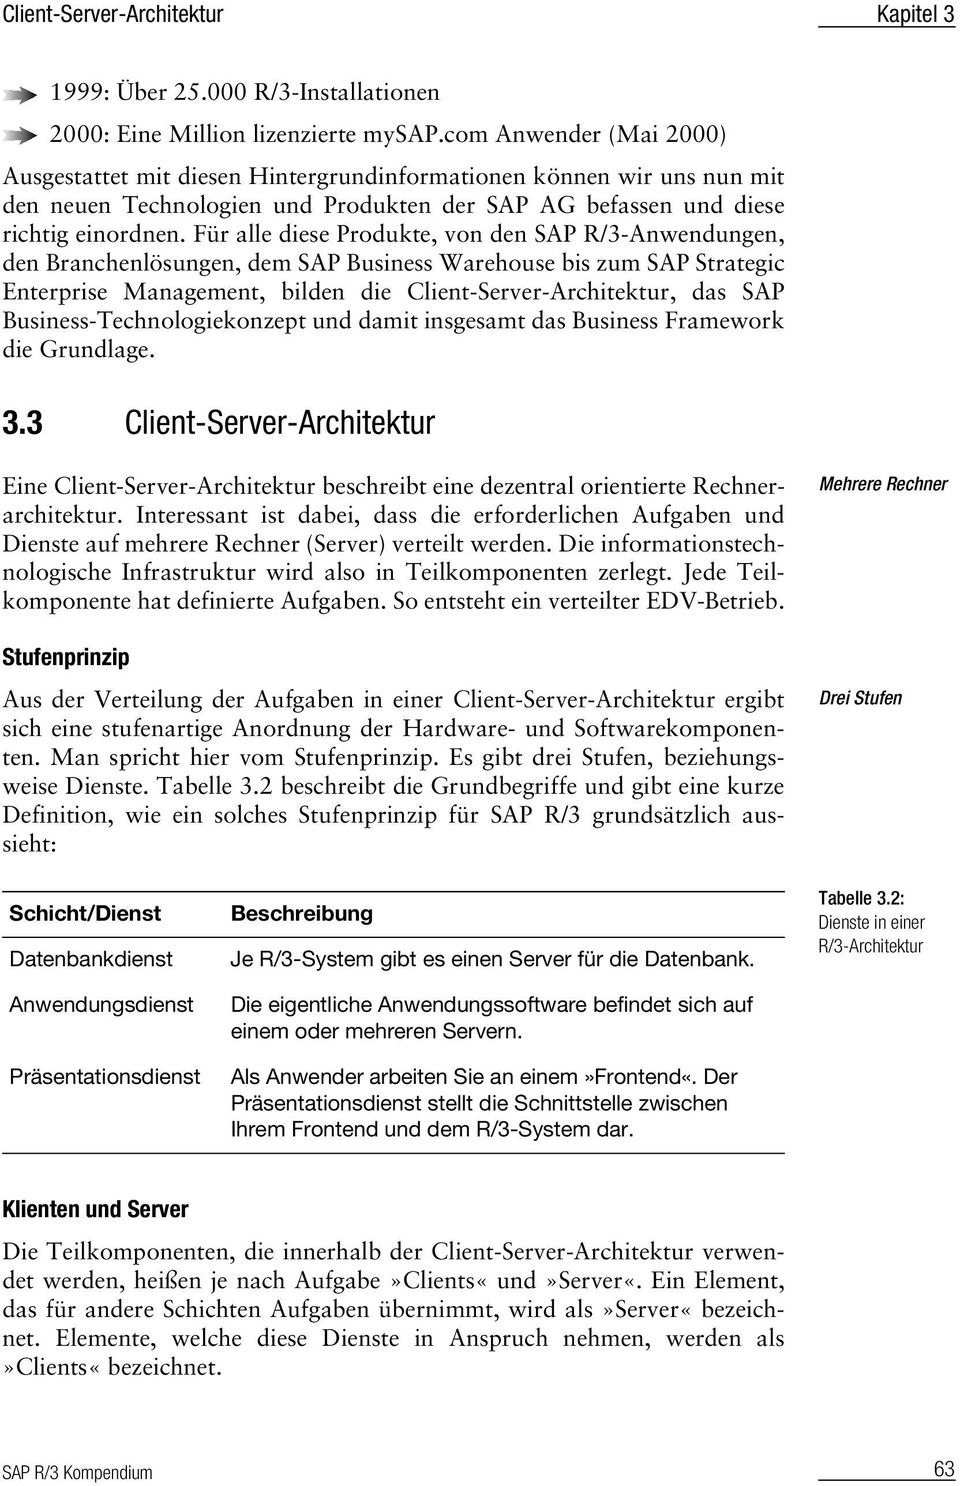 Für alle diese Produkte, von den SAP R/3-Anwendungen, den Branchenlösungen, dem SAP Business Warehouse bis zum SAP Strategic Enterprise Management, bilden die Client-Server-Architektur, das SAP